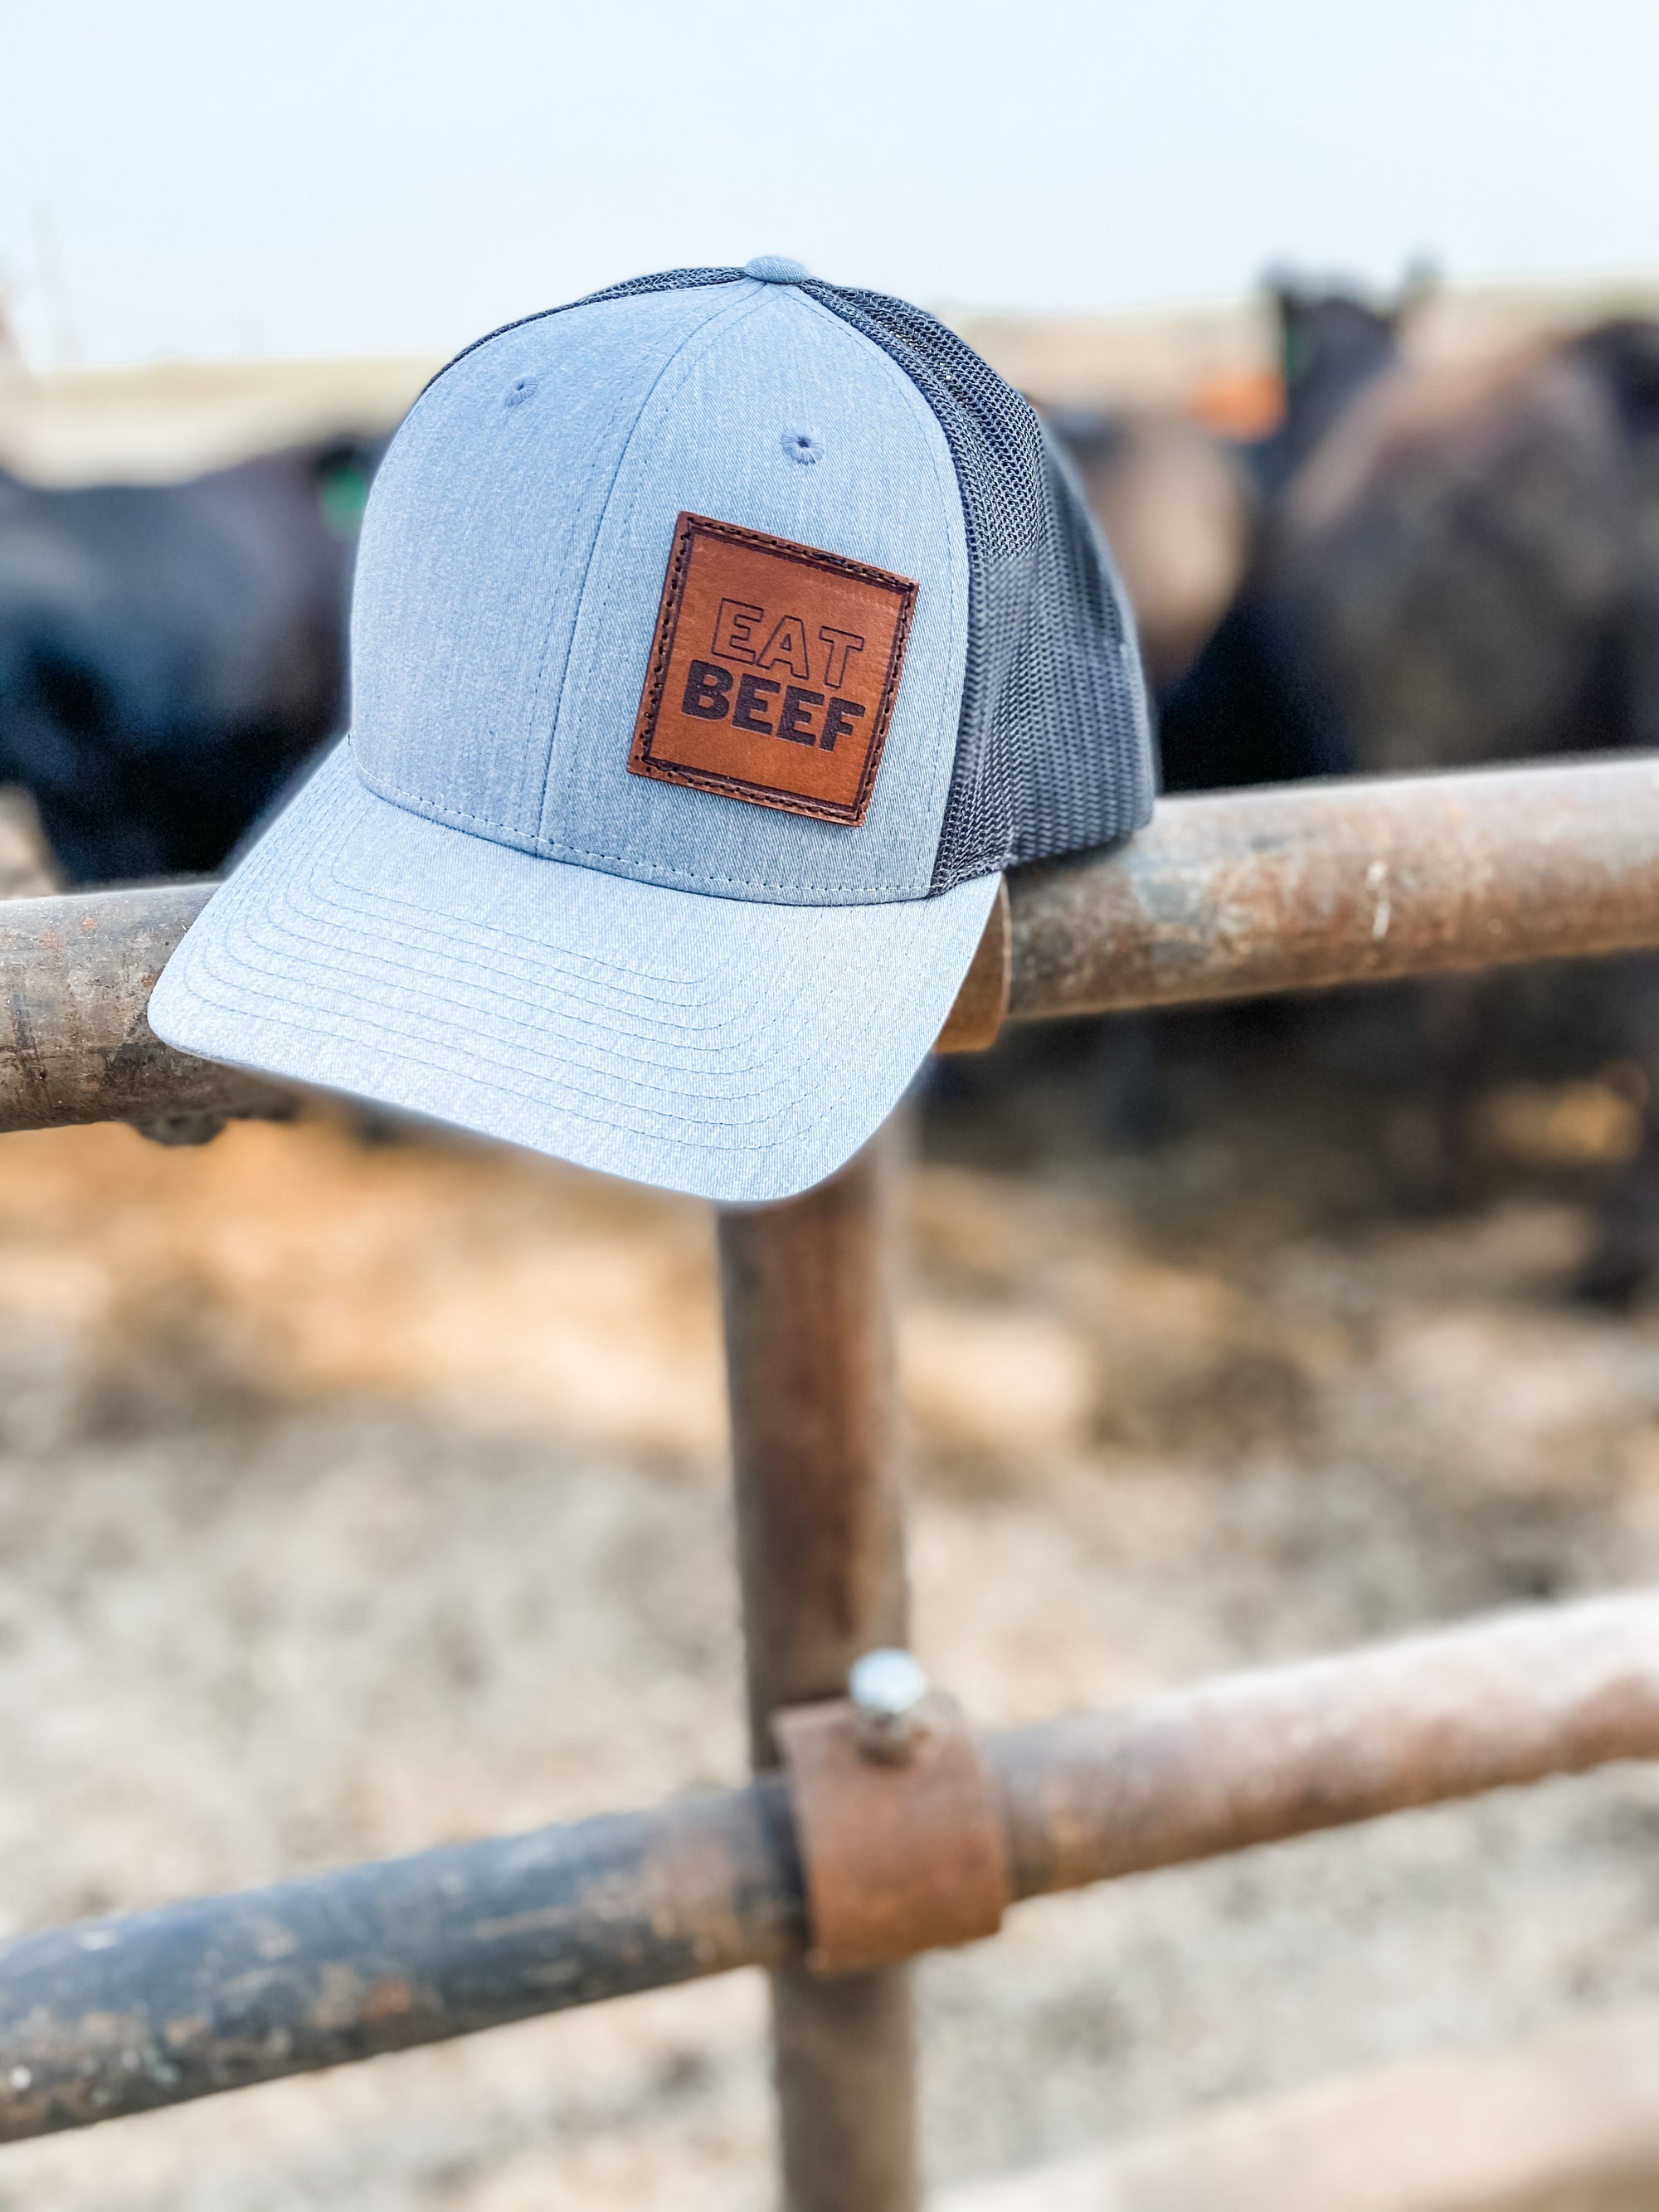 'Eat Beef' Leather Patch Trucker Cap